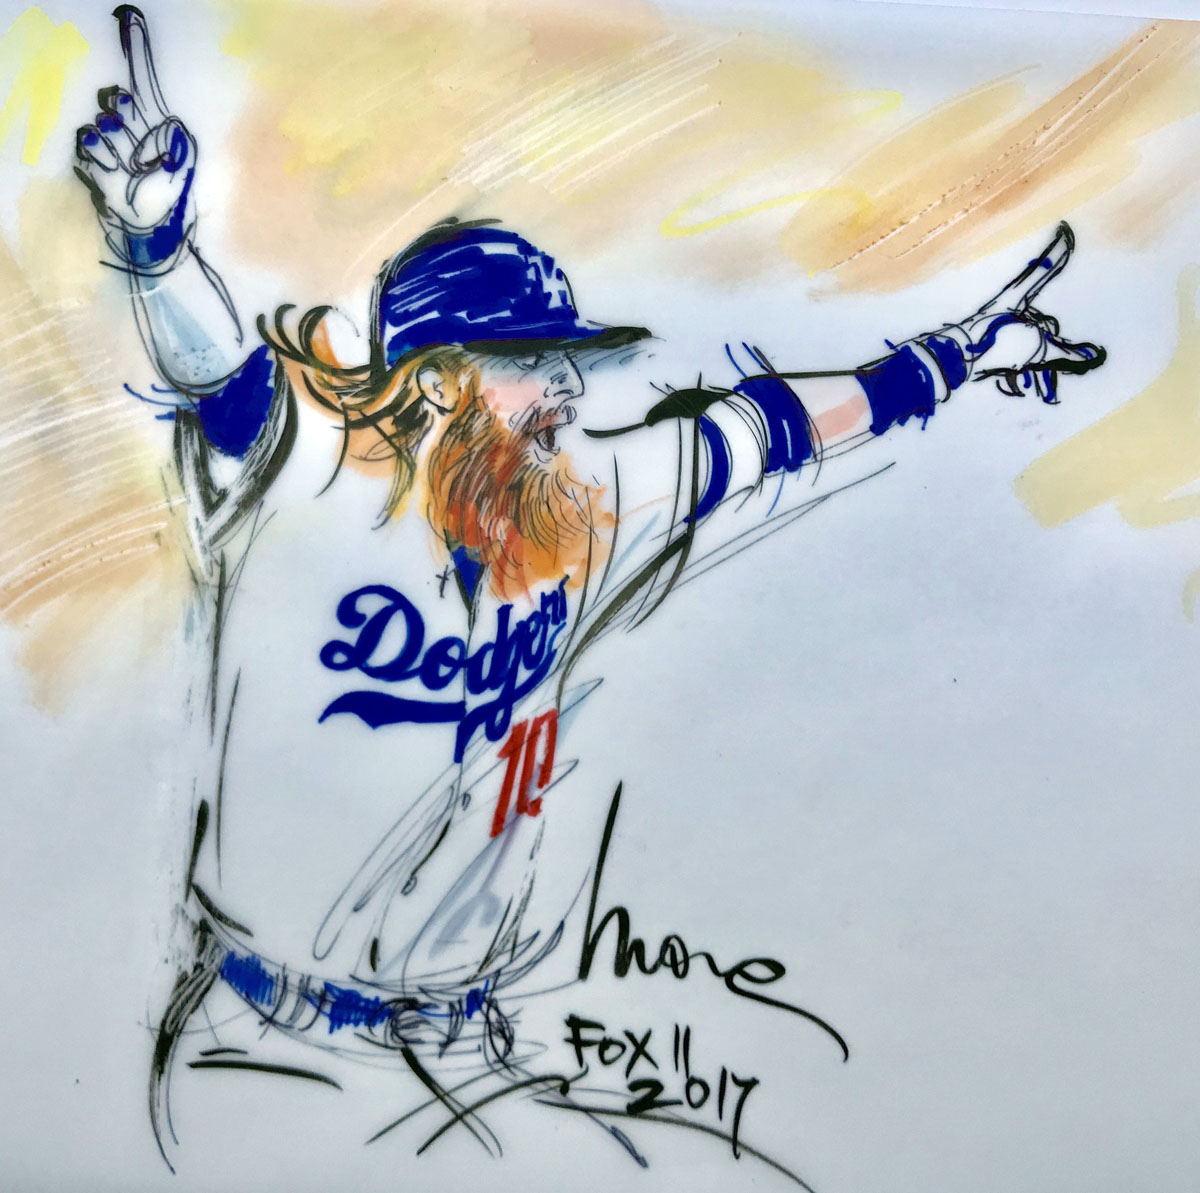 LA Dodgers illustration - Justin Turner - 2017 World Series - Mona Edwards